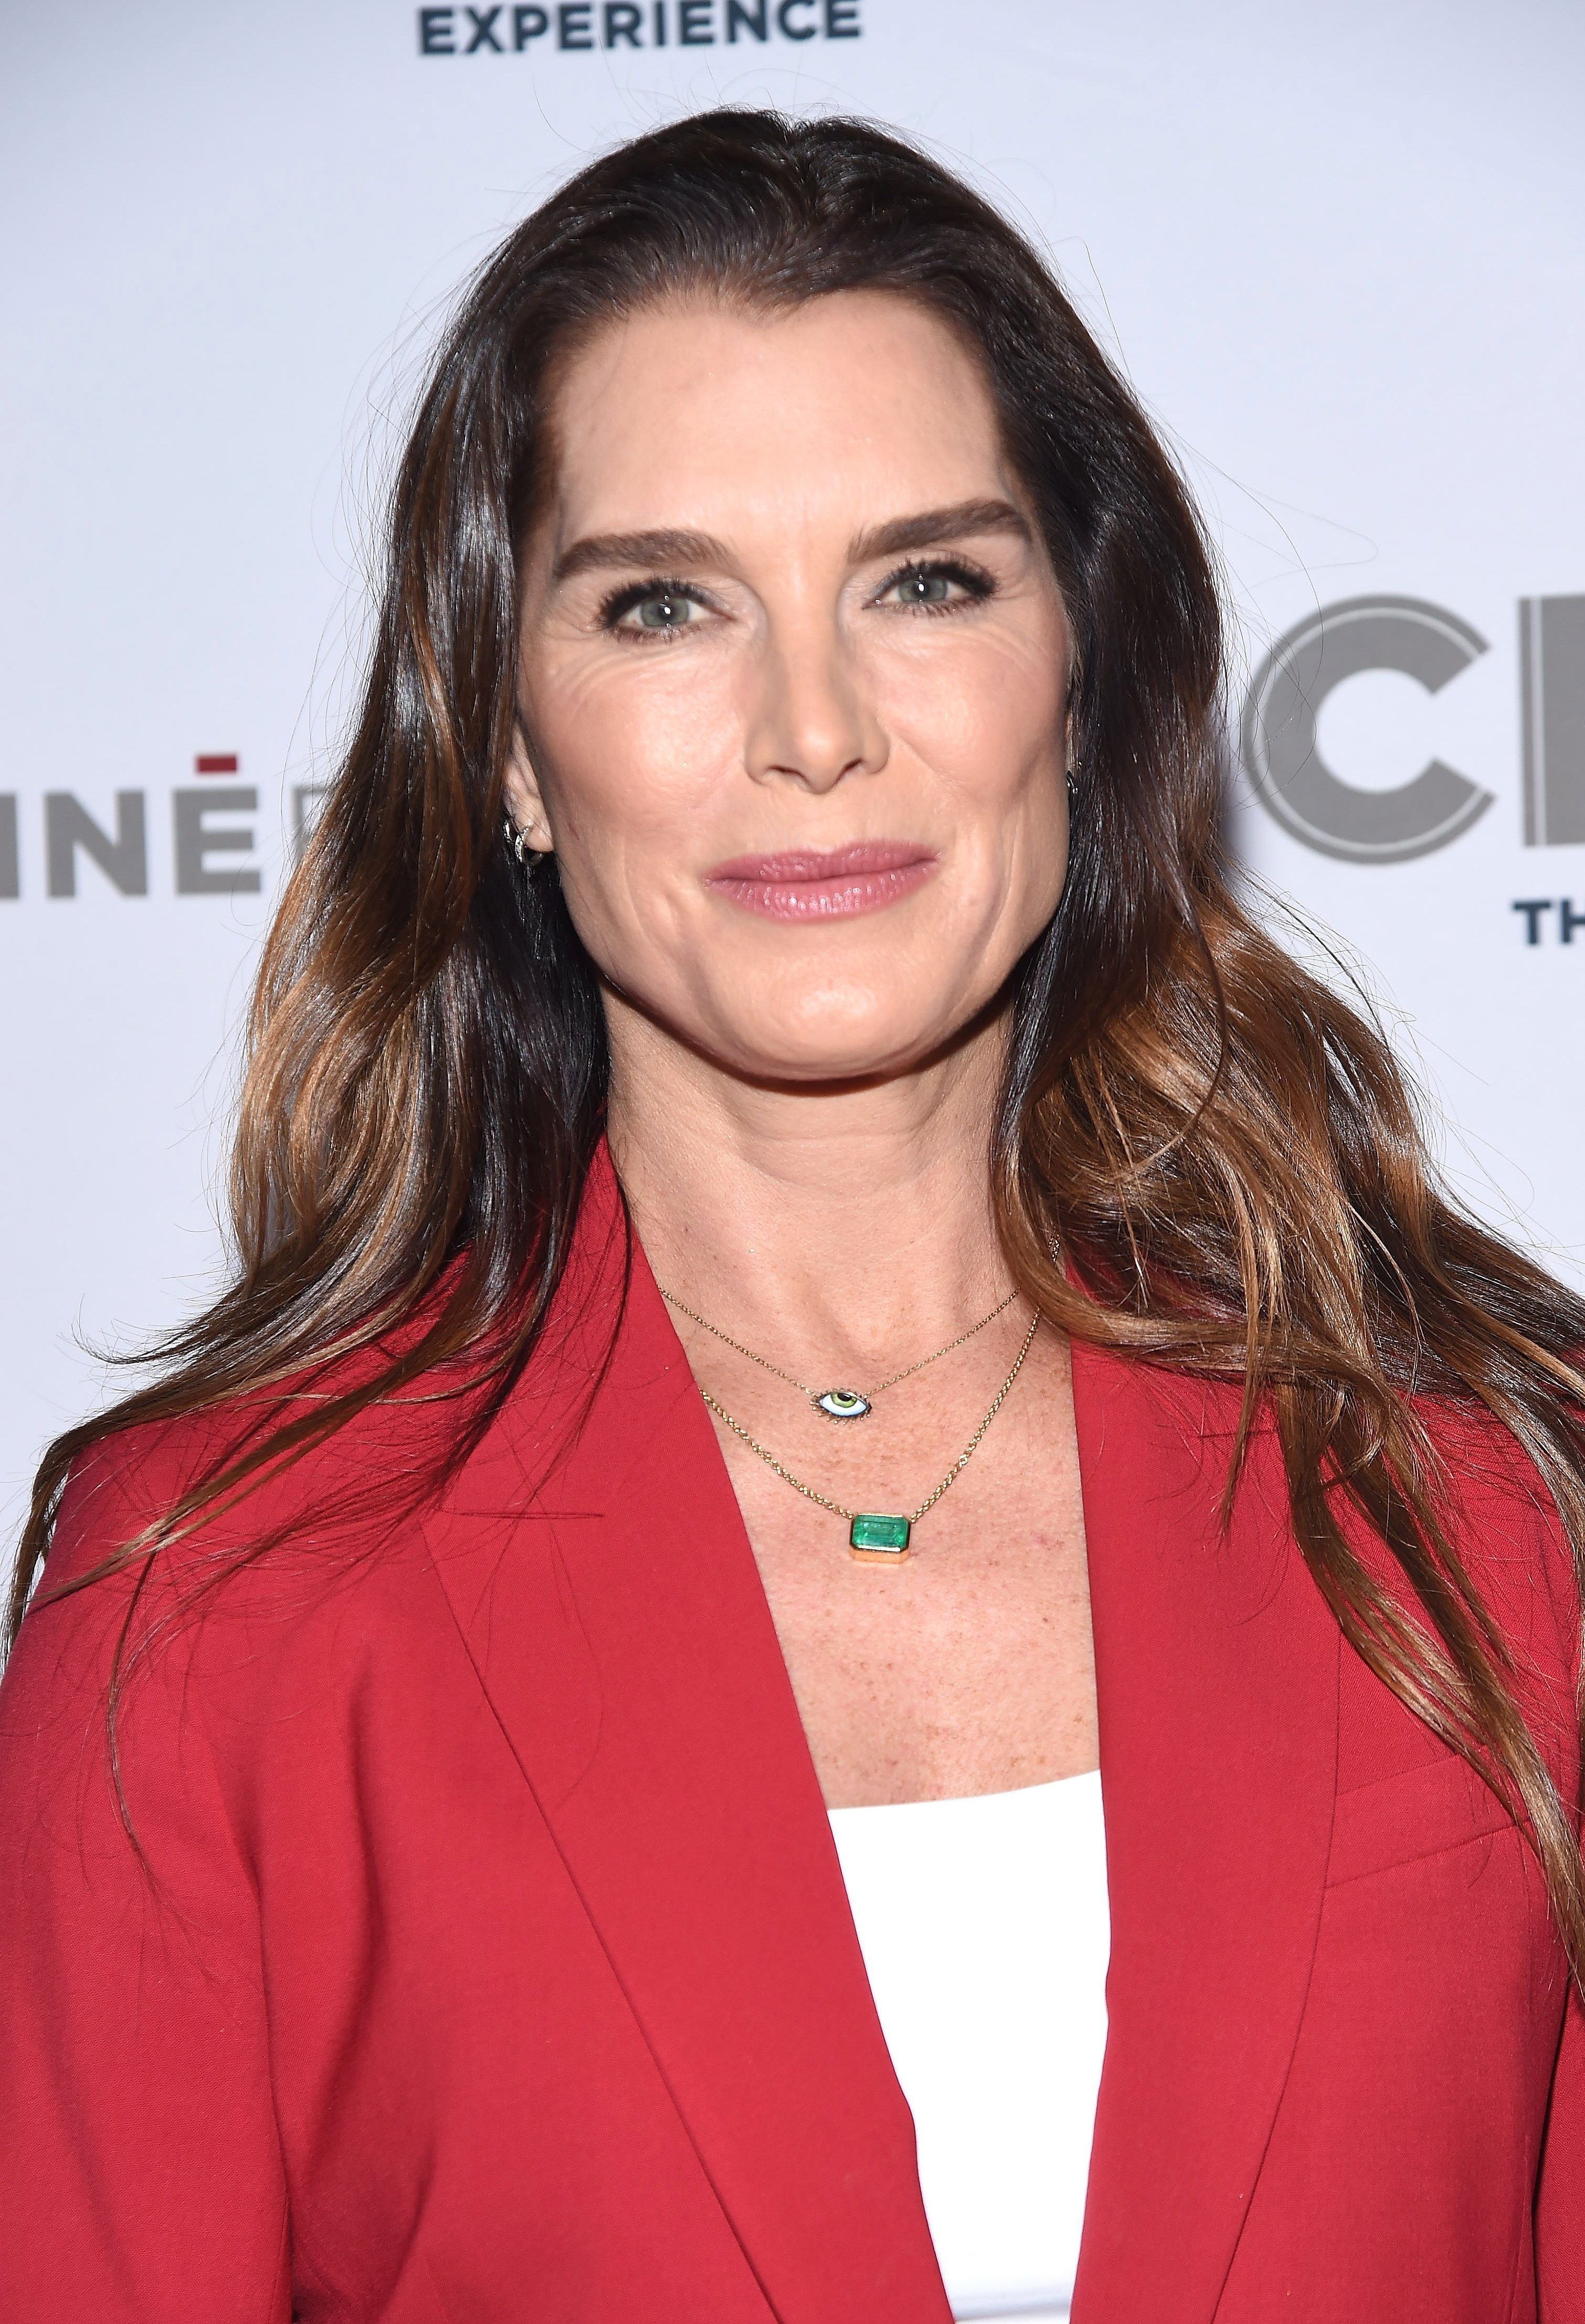 Brooke Shields, CMX CineBistro in New York City, 2018 | Quelle: Getty Images